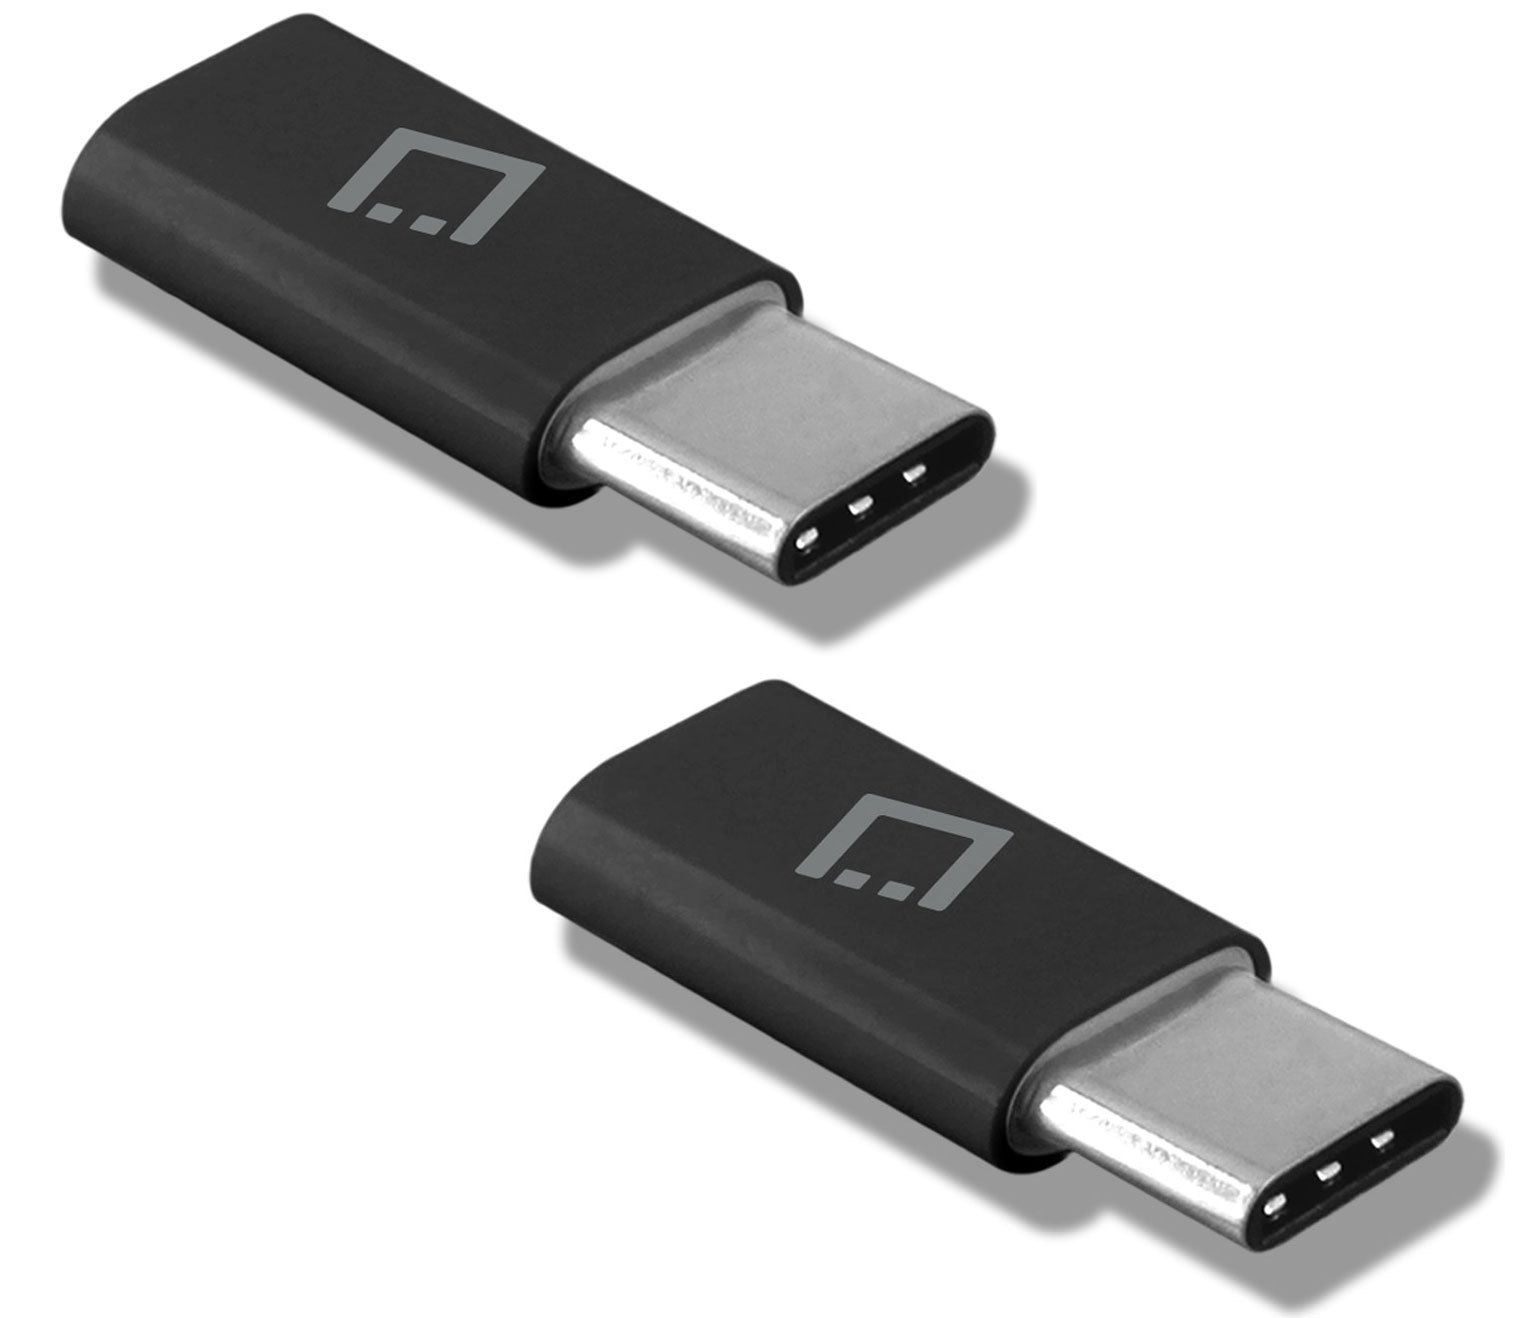 LG Stylo 6 MicroUSB to USB Type-C Adapter Black Pack Of 2